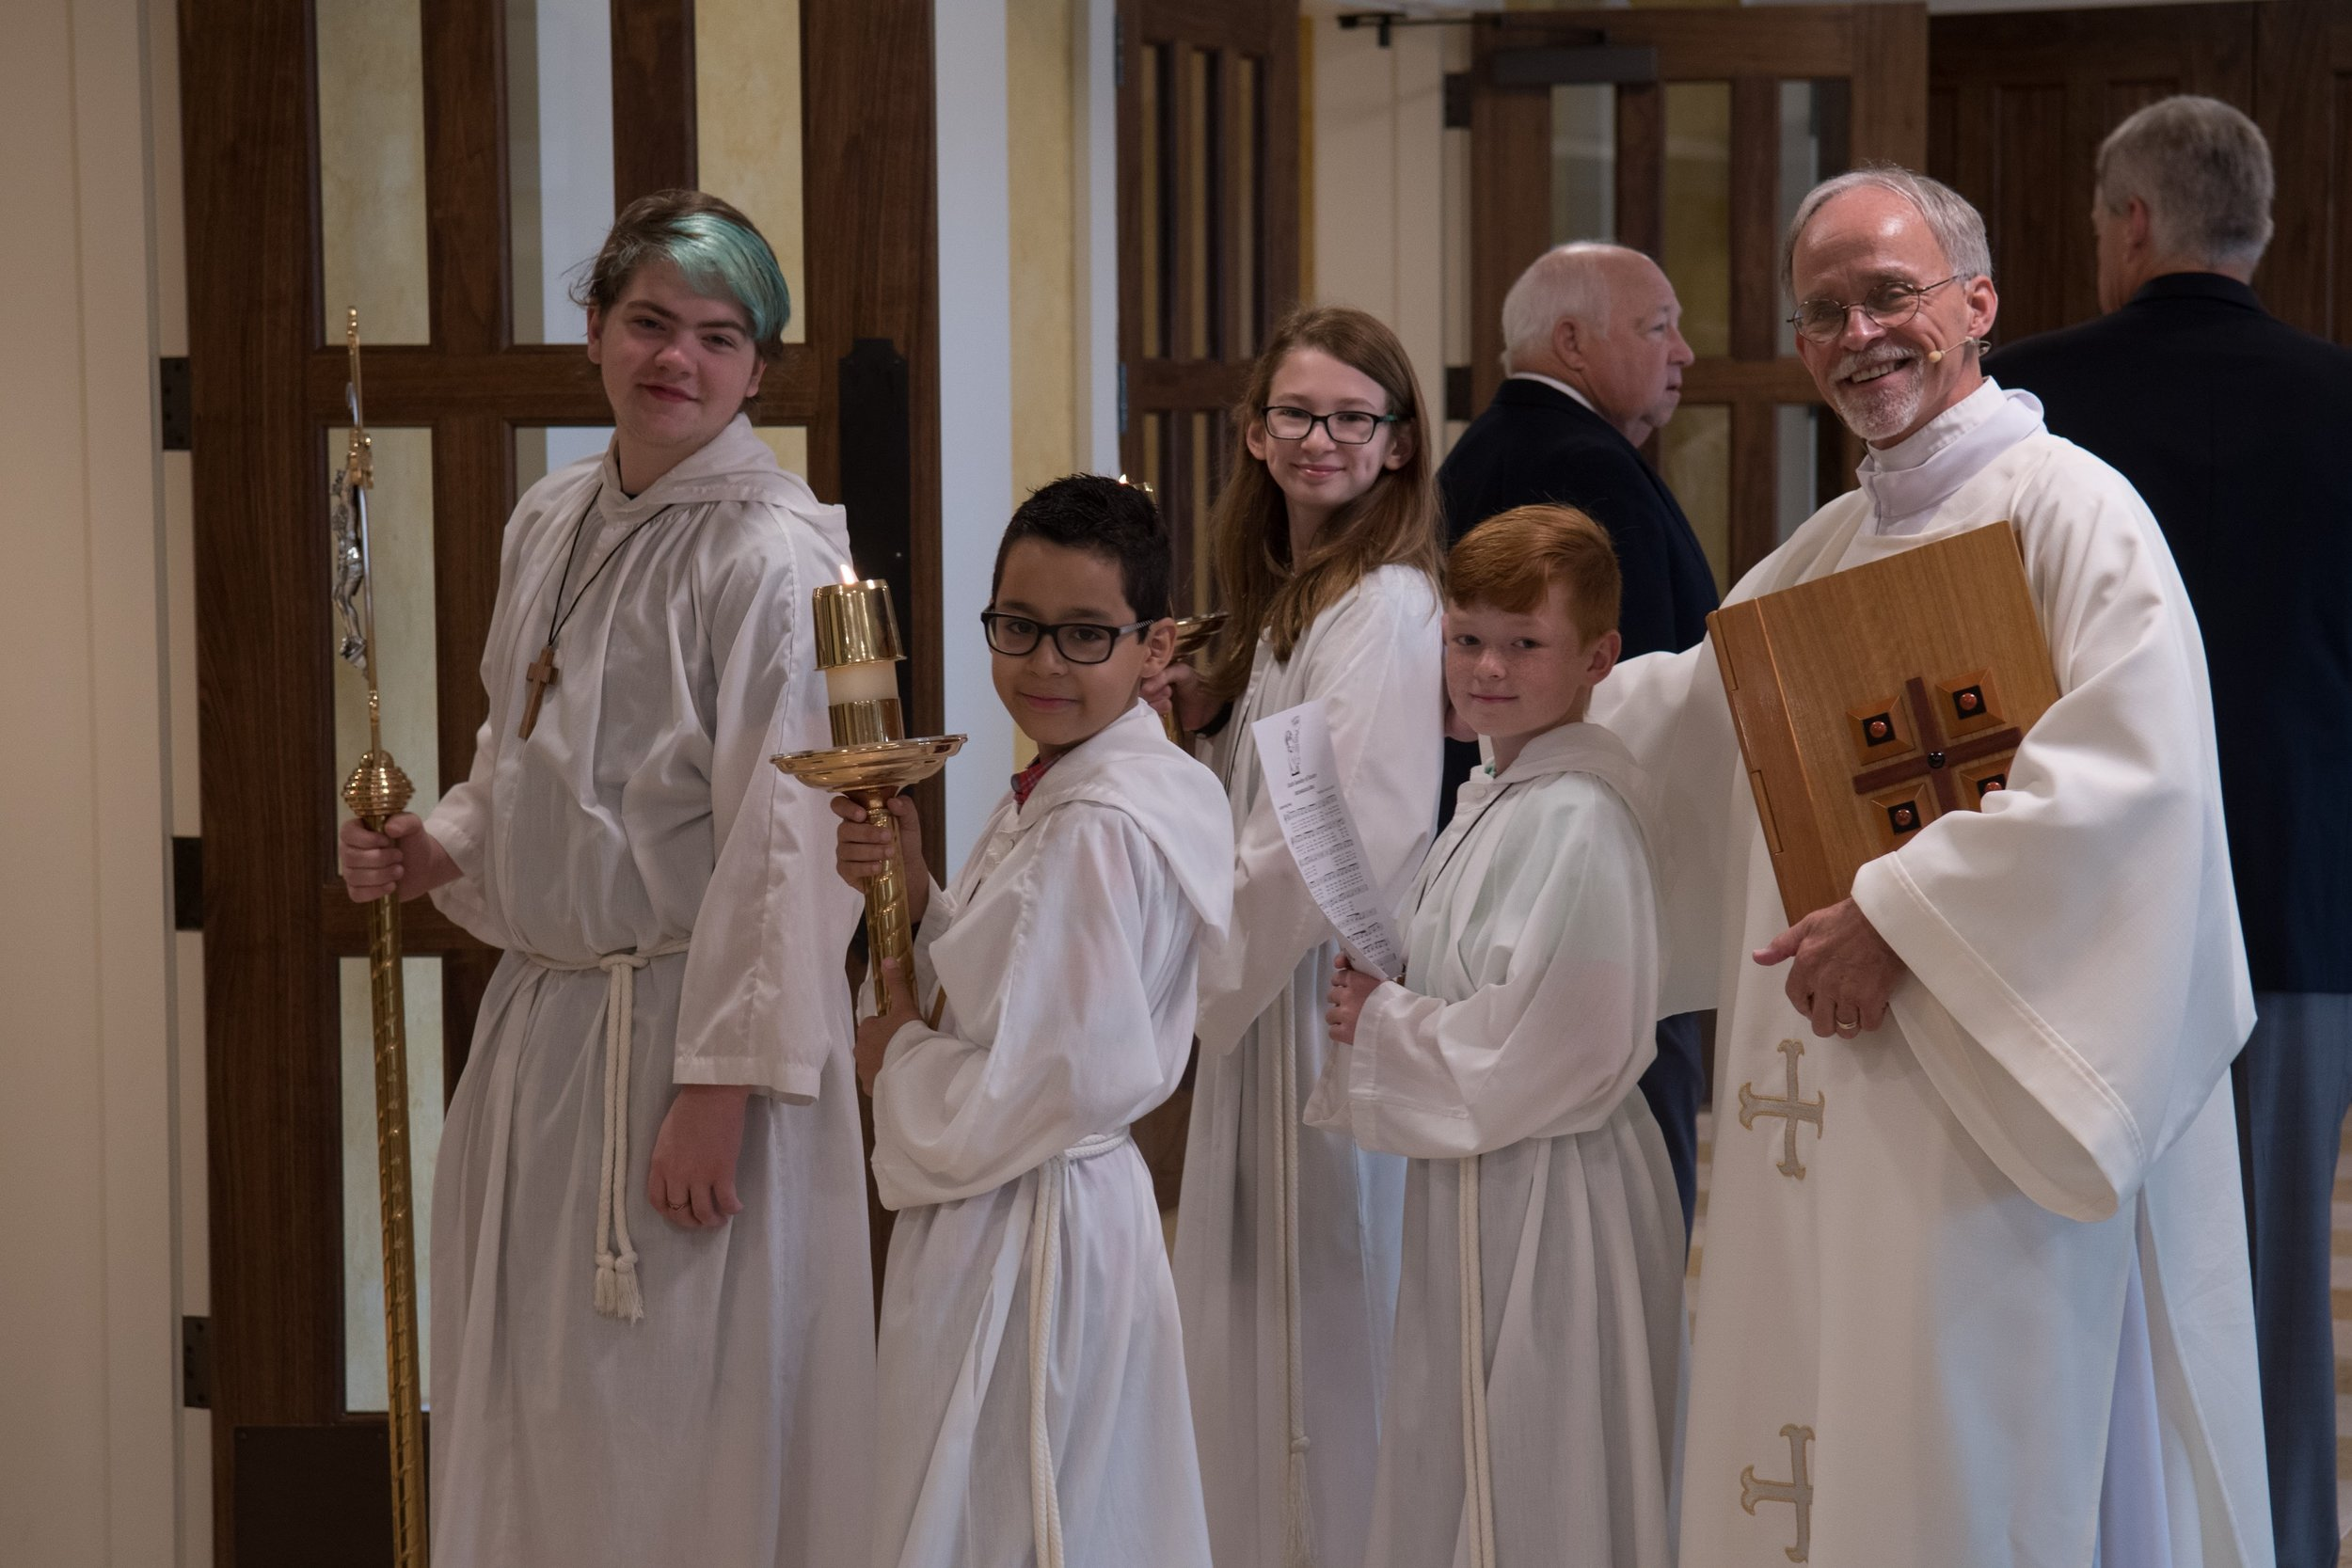 Altar Server - The primary role of the altar server is to assist the priest in the celebration of the liturgy during Mass. Servers carry out specific actions and set an example for the congregation by active participation in the liturgy.